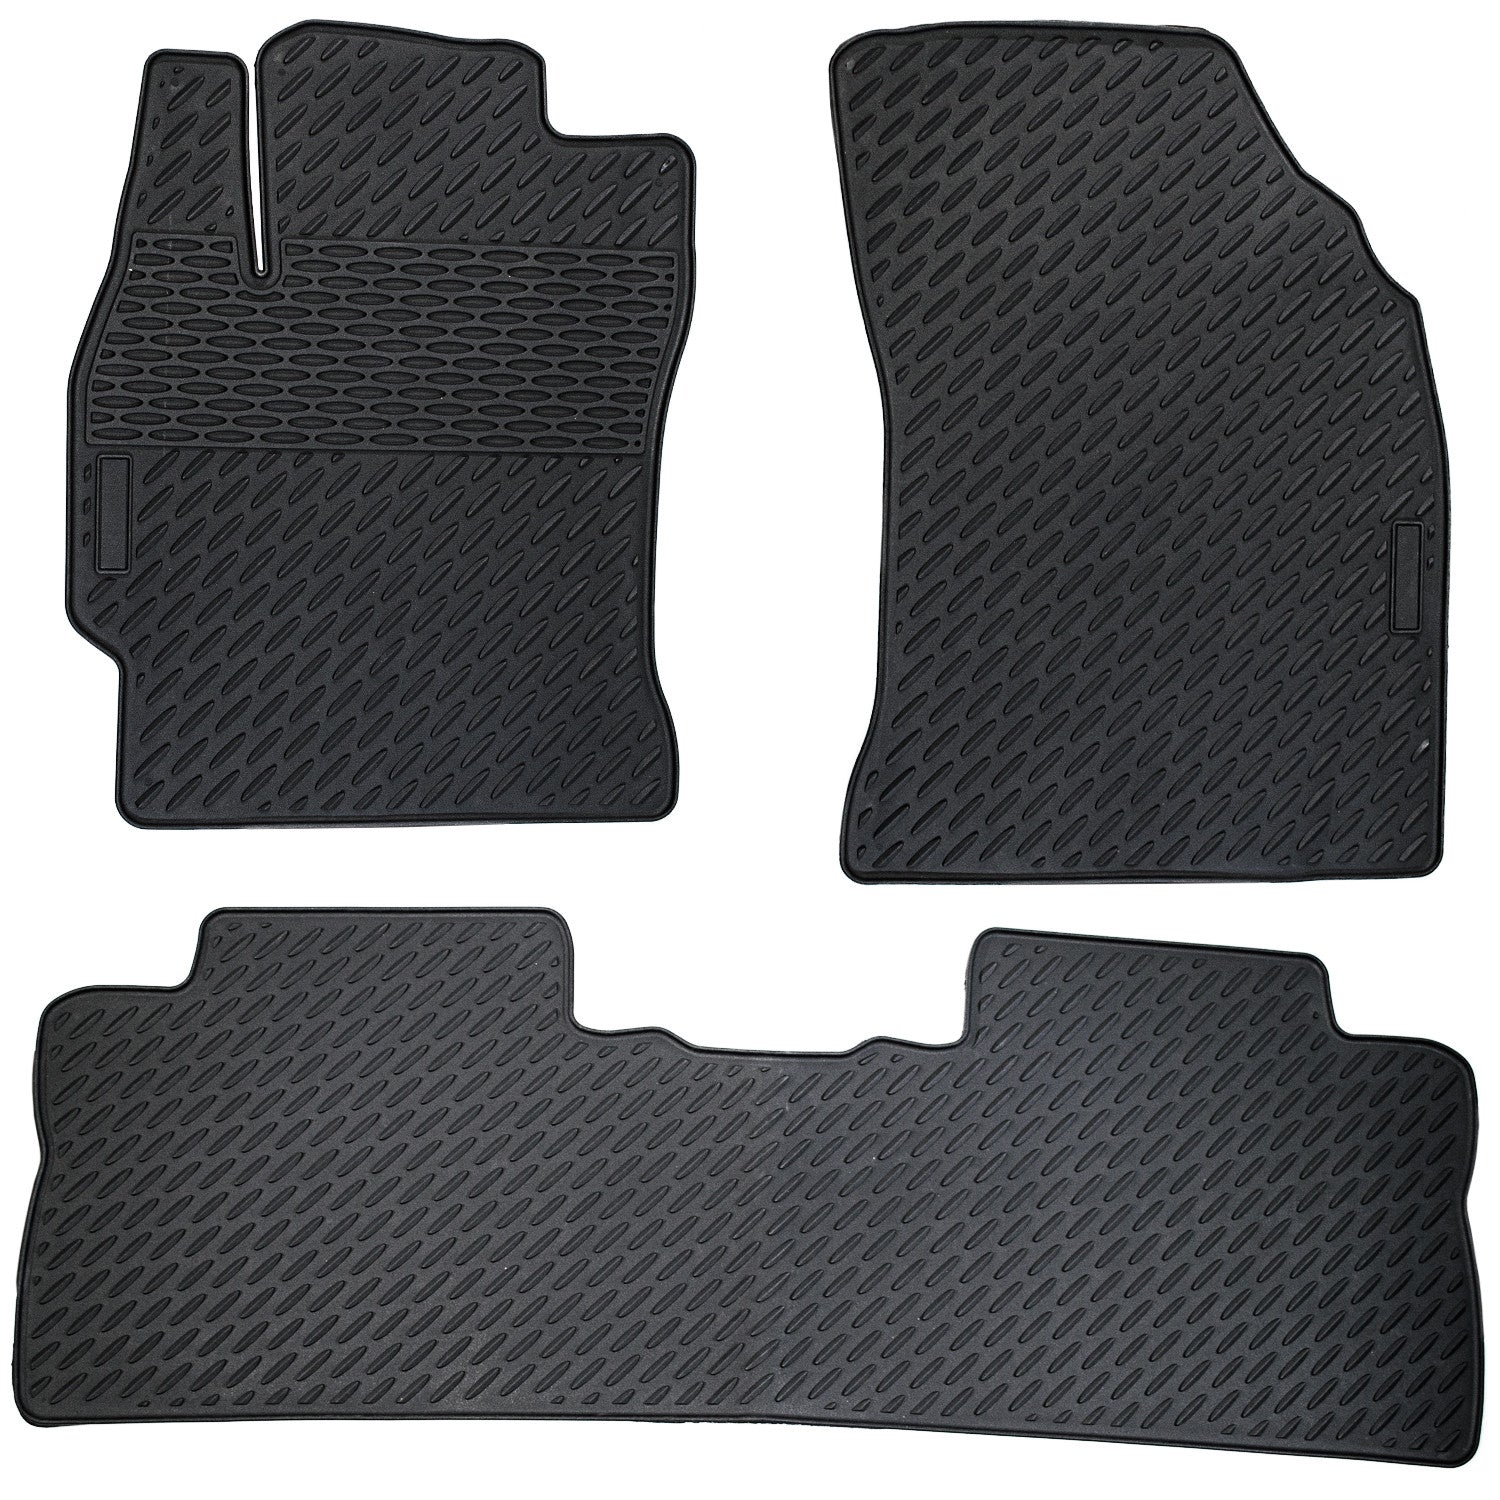 floor mats hilux grey tailored on in toyota genuine zoom roughtrax carpet image this